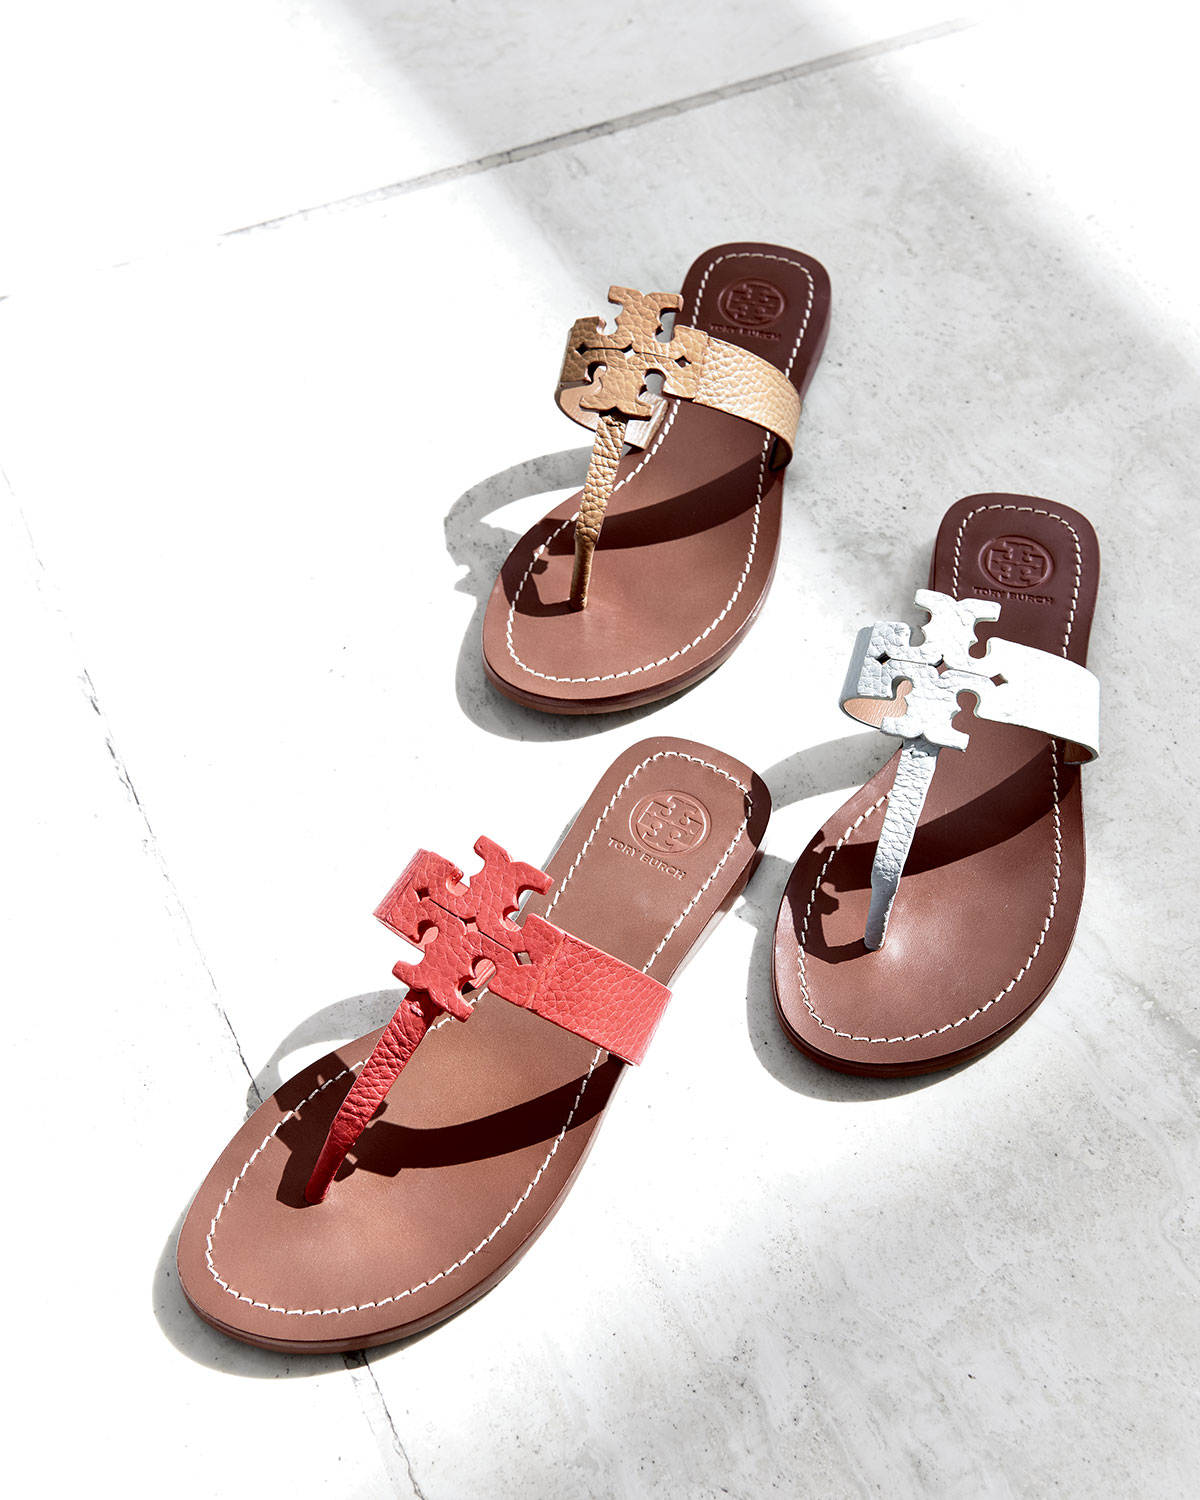 21add4304b2 Lyst - Tory Burch Moore Leather Thong Sandal in Brown